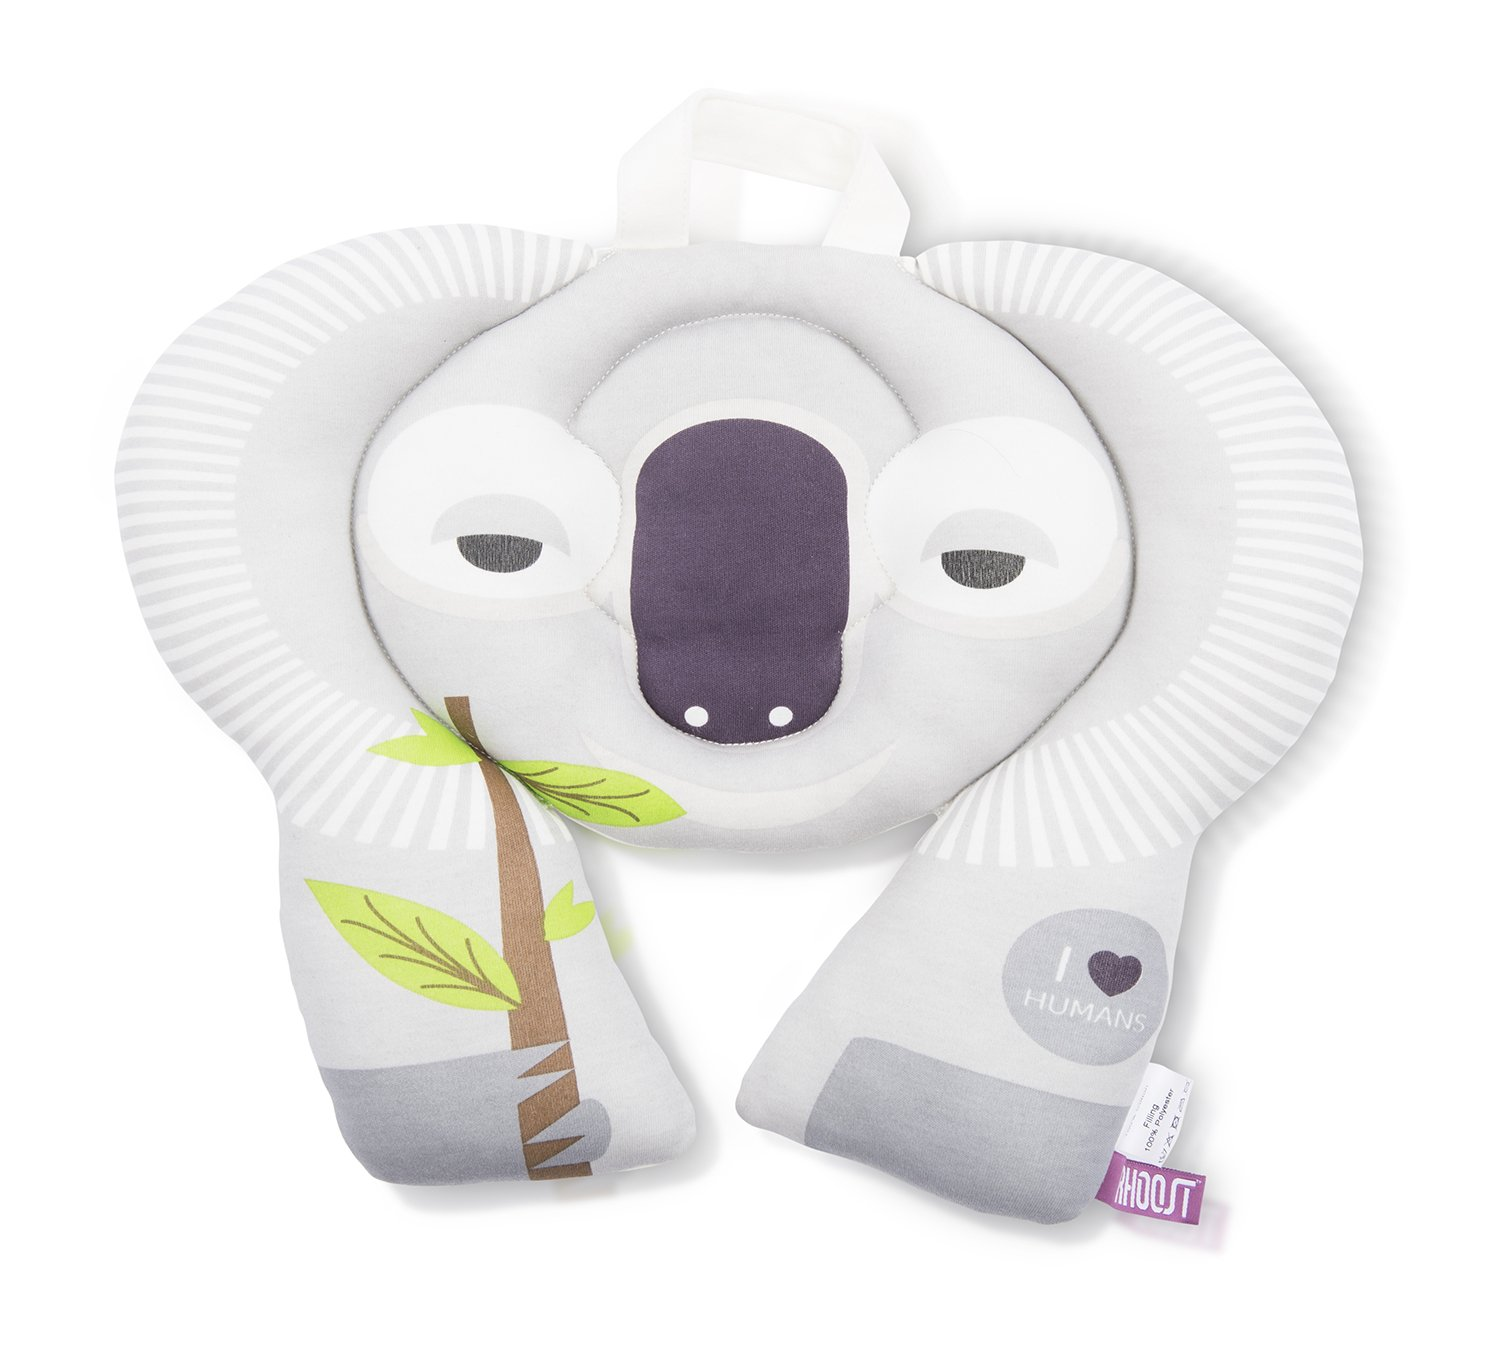 Rhoost Toddler Travel Buddy Neck Rest. Head Support for Kids on Car & Airplane Journeys. Fun Koala or Owl design with Pockets & Name Badge HRKL209